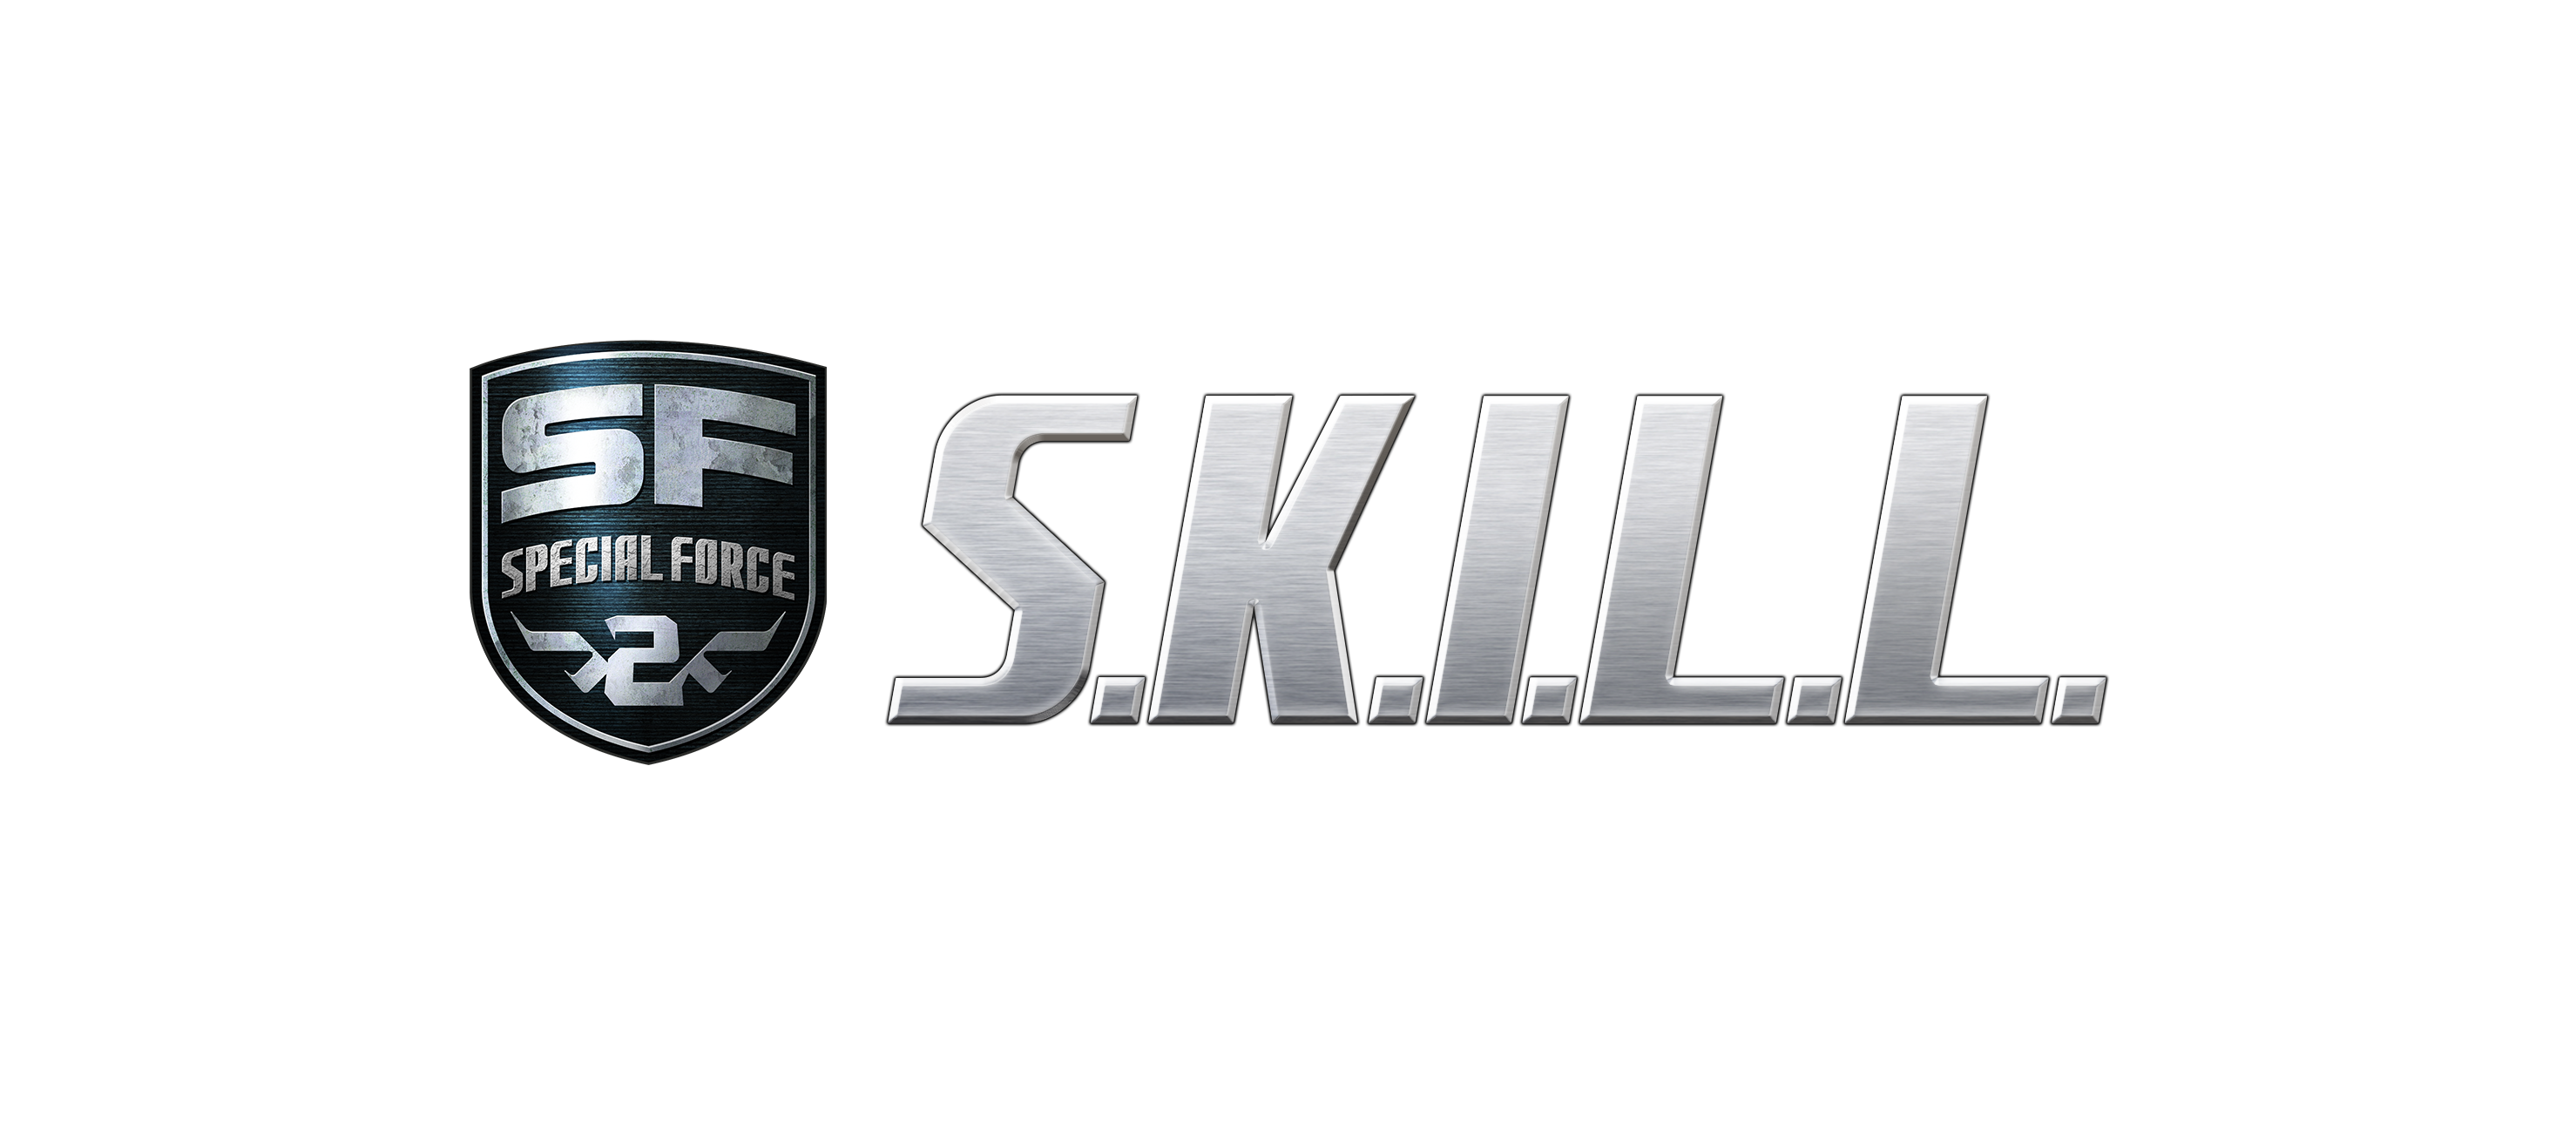 skill special force 2 anmelden